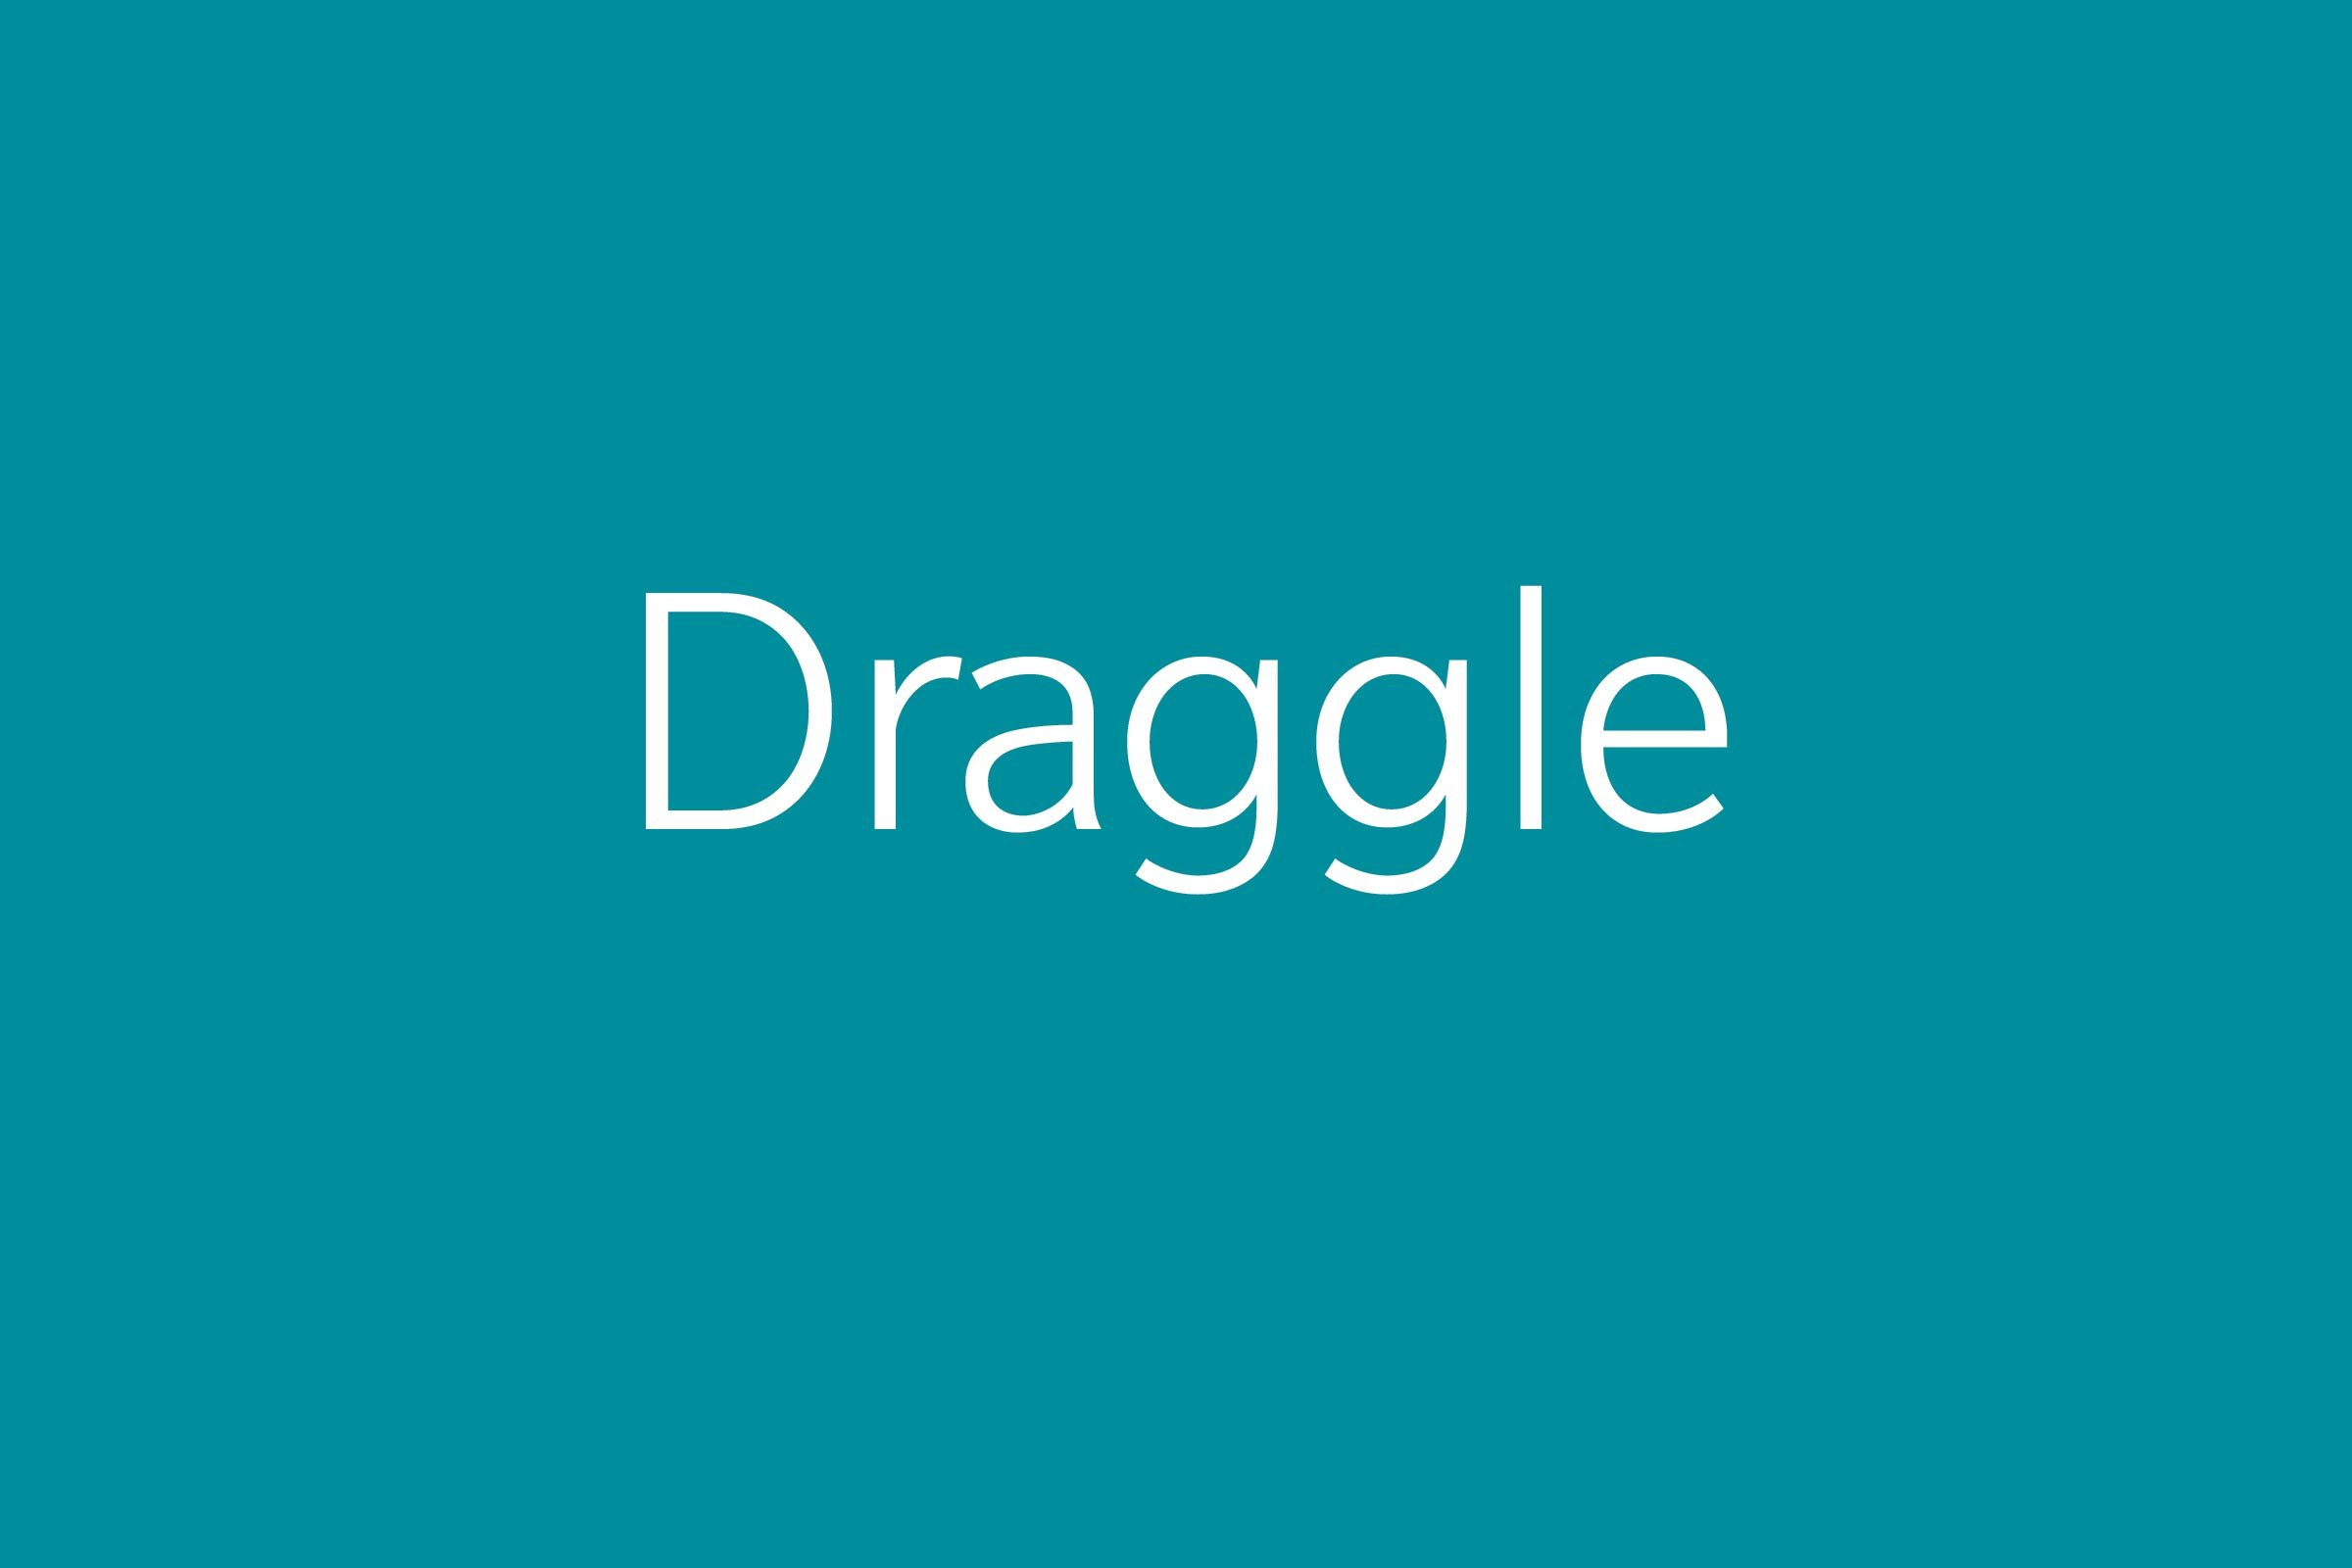 draggle funny word funny words to say